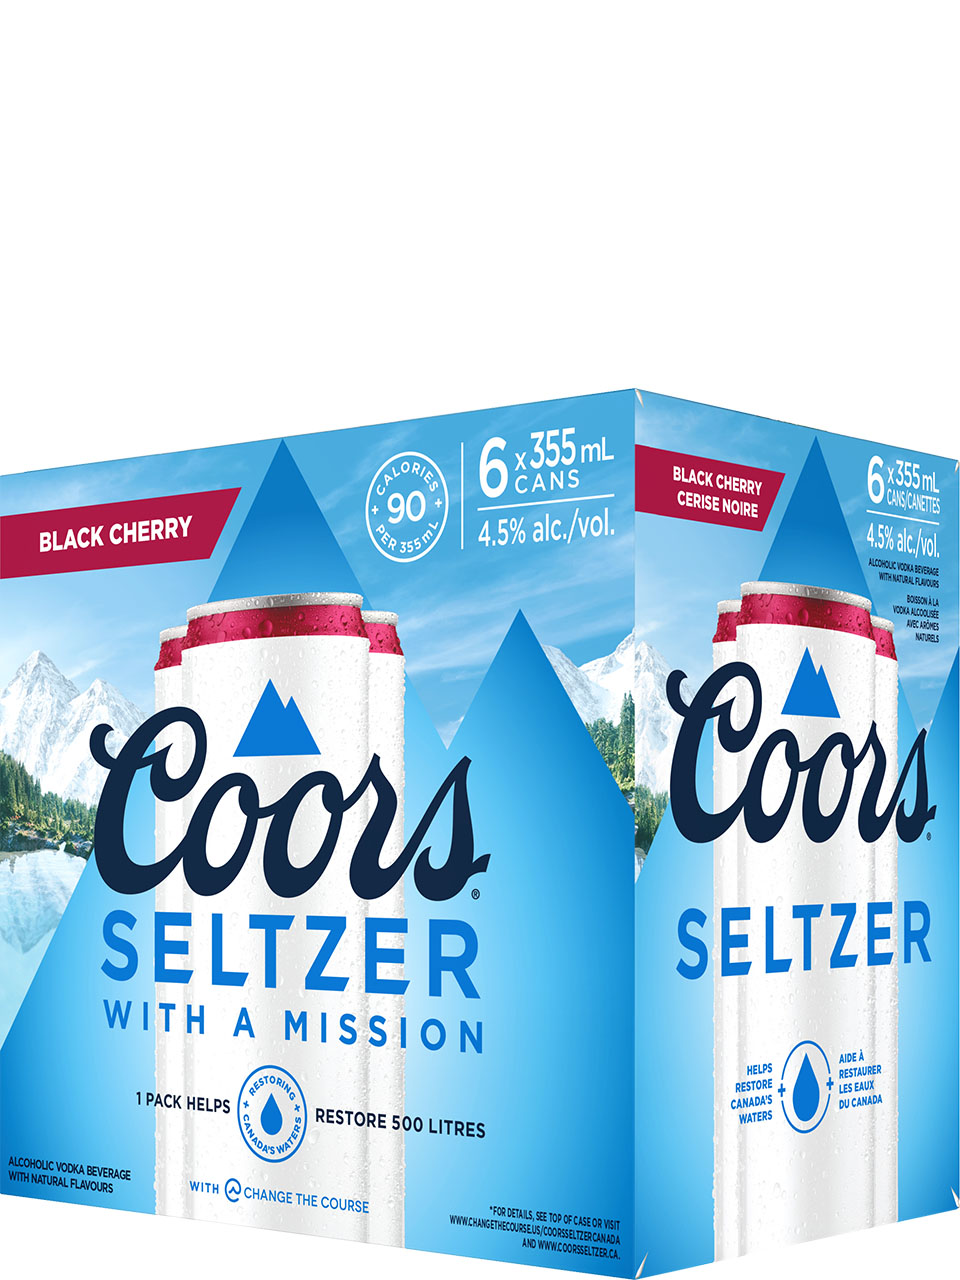 Coors Seltzer Black Cherry 6 Pack Cans